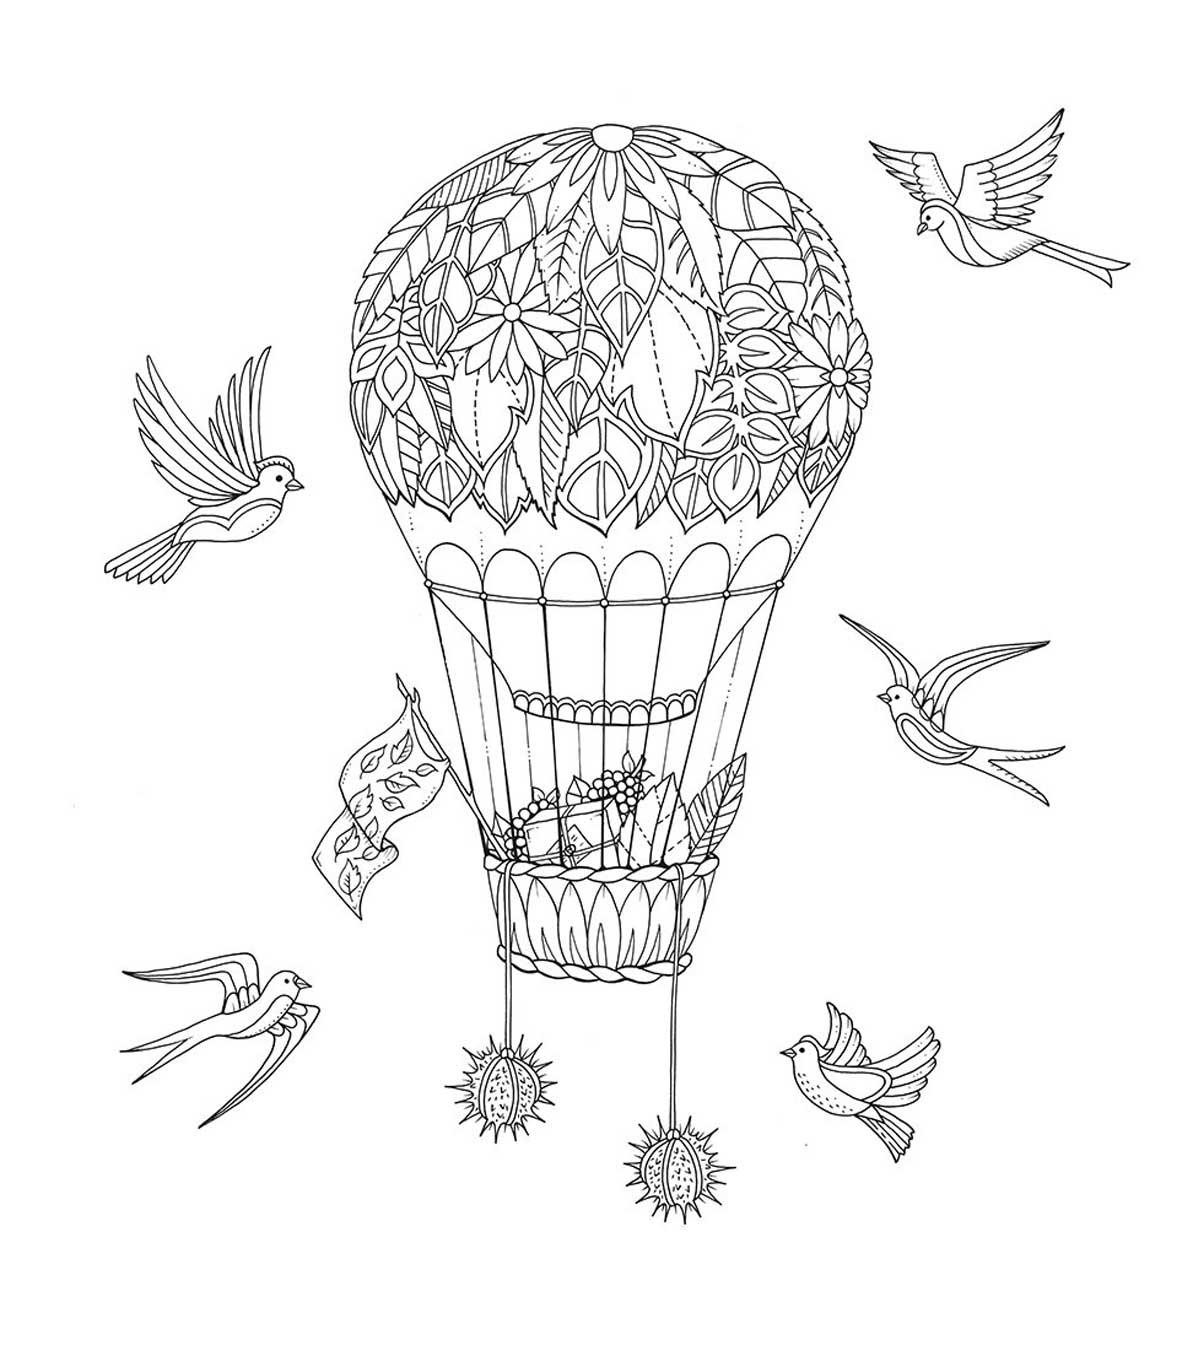 Enchanted Forest Coloring Pages At Getdrawings Com Free